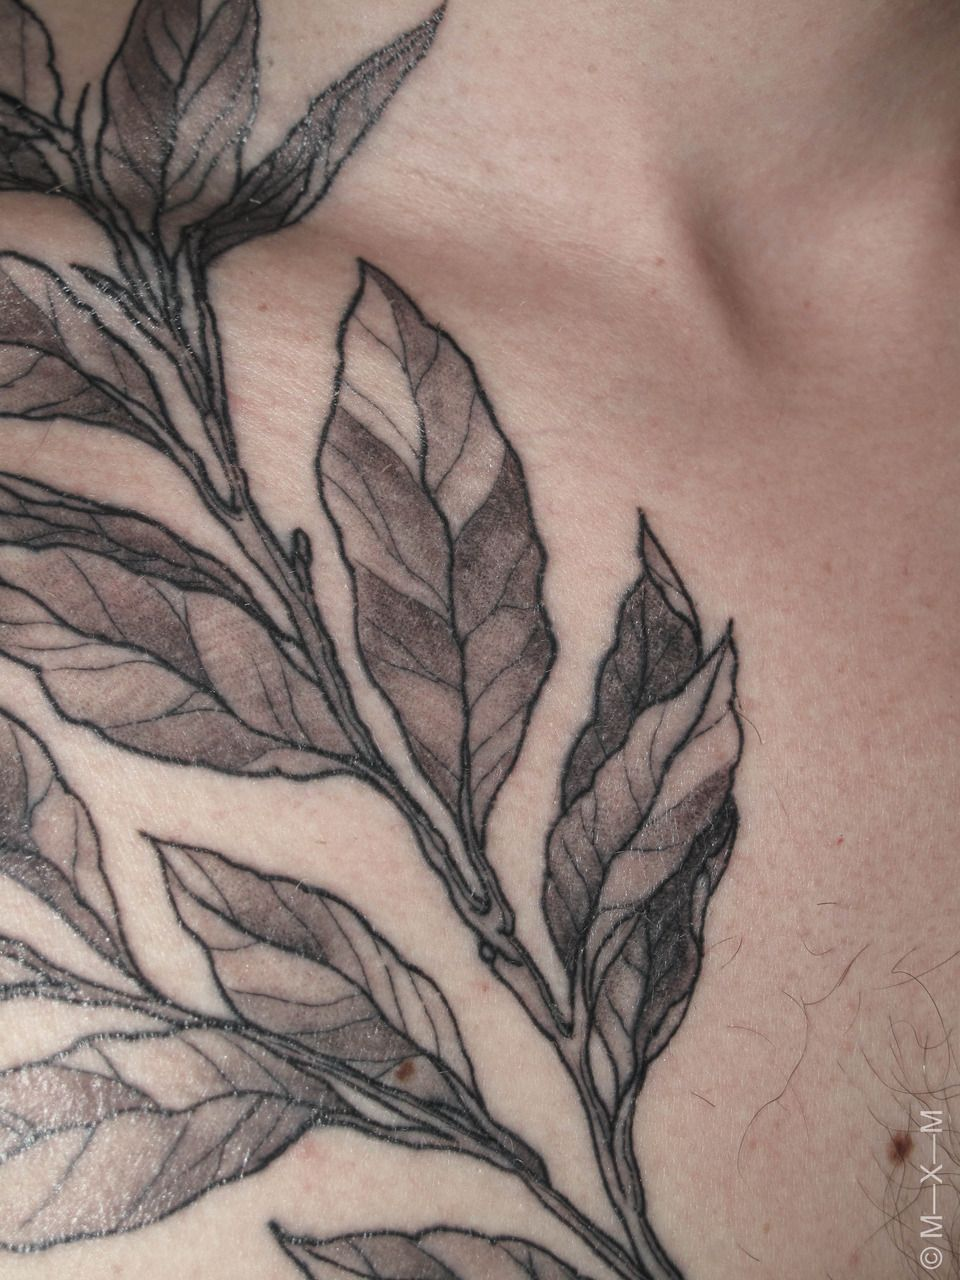 Dot shading tattoo inspiration pinterest for How to shade tattoos